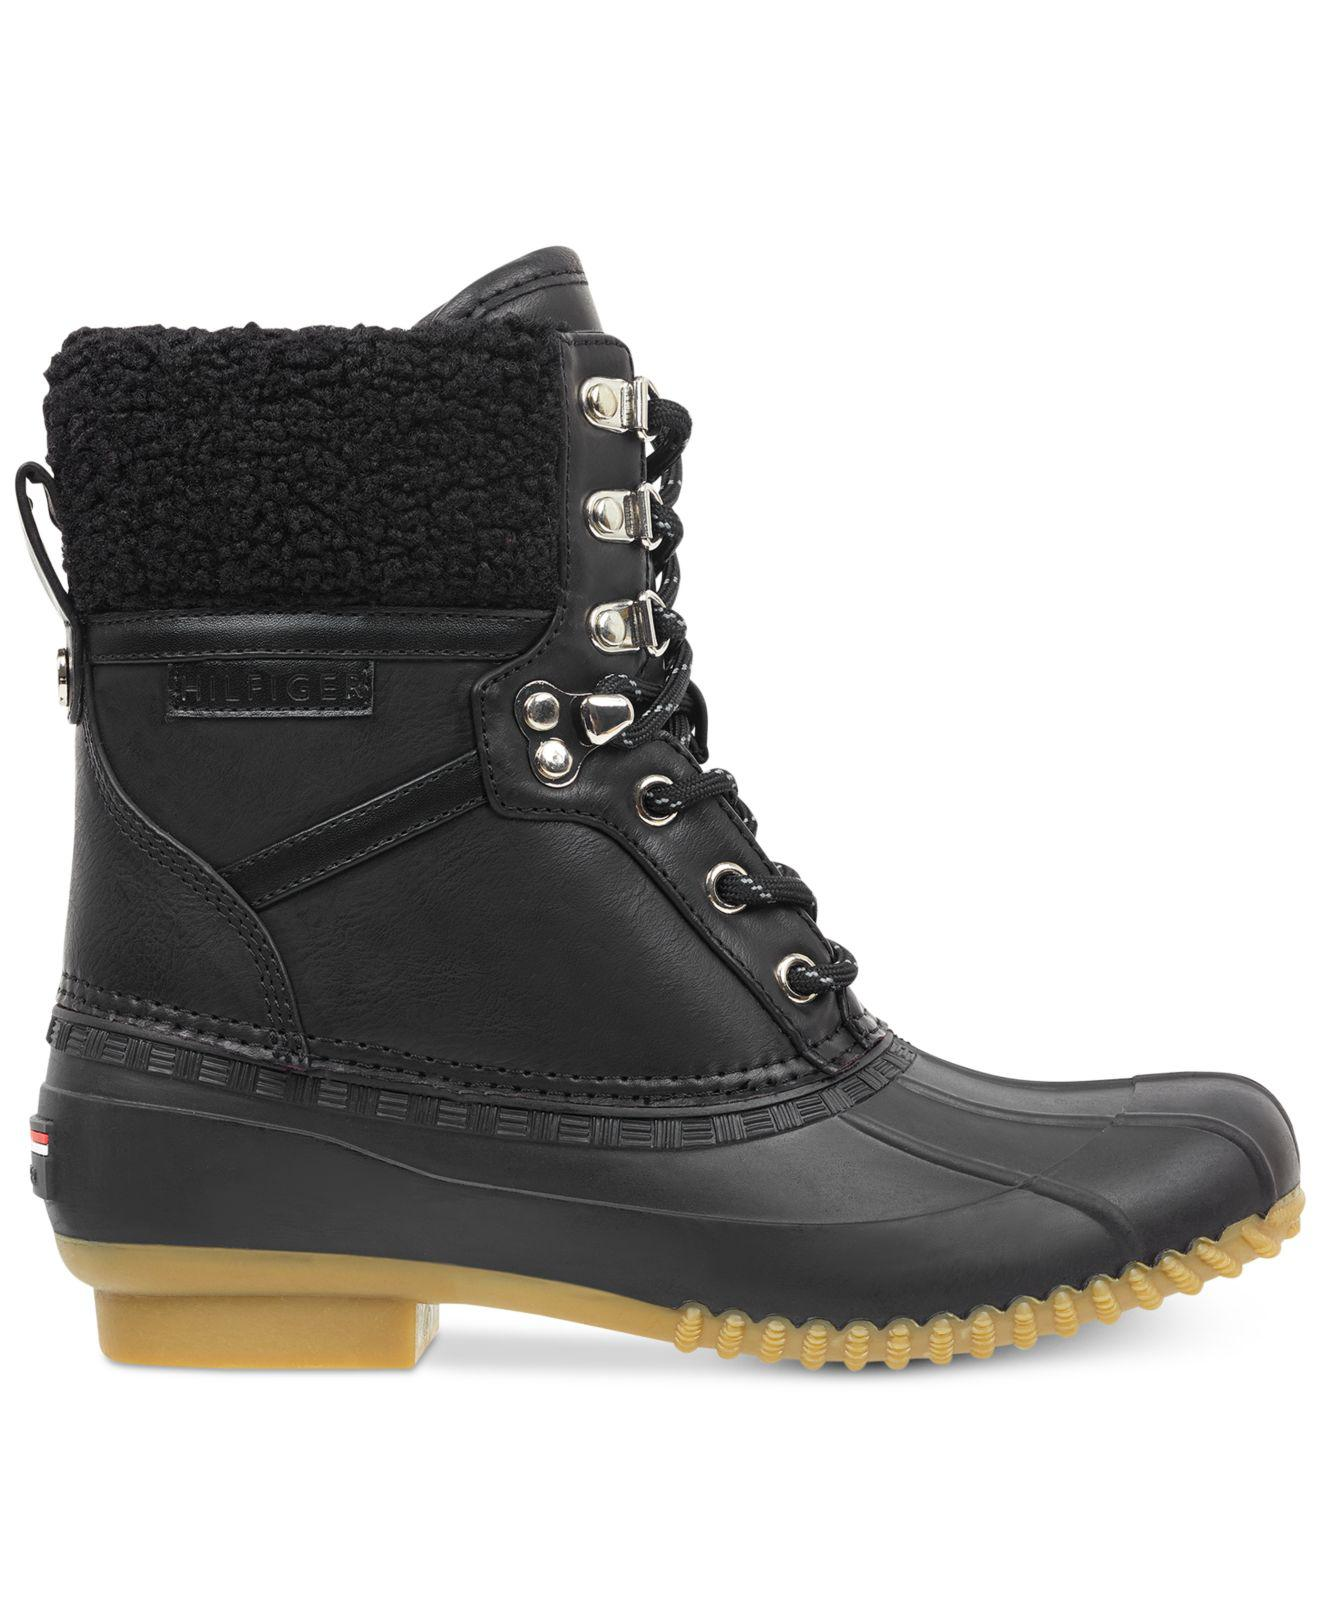 d235d9d270f646 Lyst - Tommy Hilfiger Rian Lace-up Winter Boots in Black